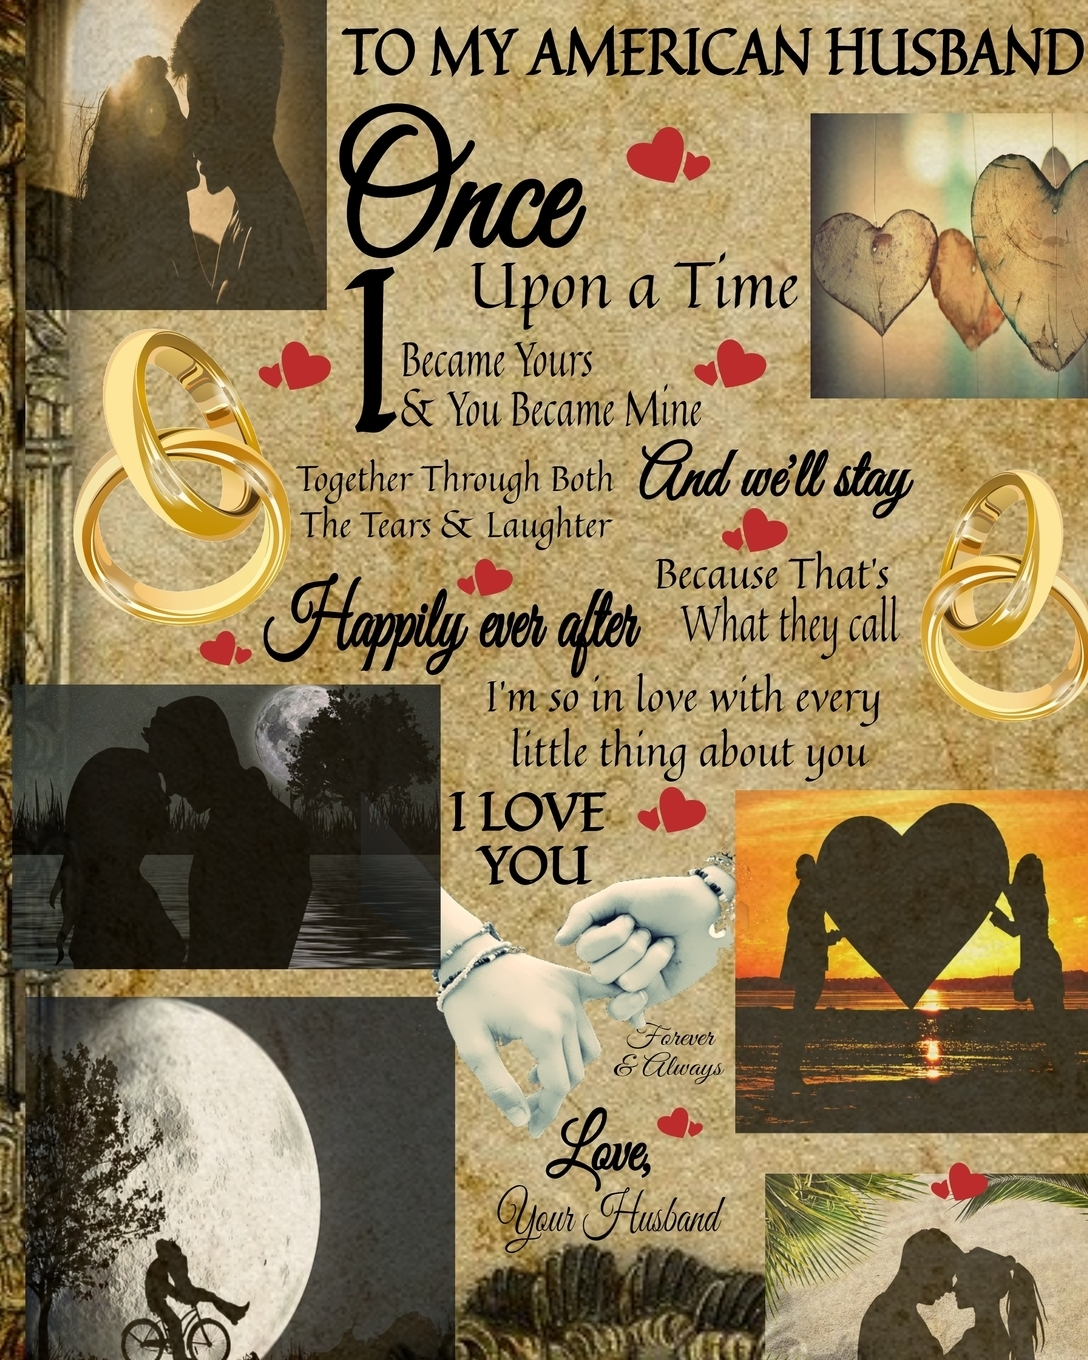 Scarlette Heart. To My American Husband Once Upon A Time I Became Yours & You Became Mine And We'll Stay Together Through Both The Tears & Laughter. 20th Anniversary Gifts For Husband - Once Upon A Time Journal - Paperback Black Lined Composition Notebook & Journa...